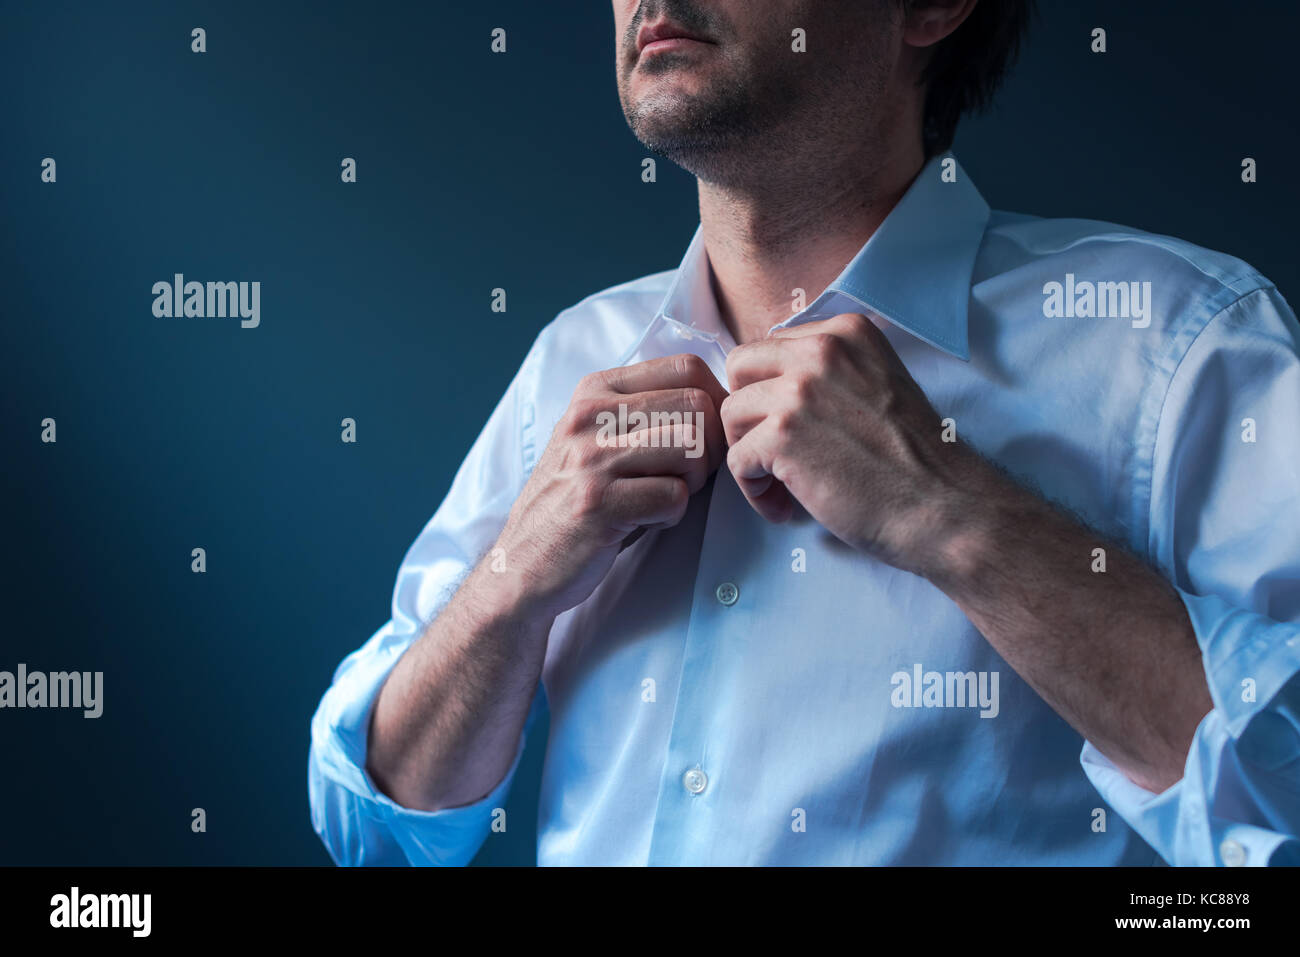 Businessman getting dressed for job interview, man buttoning white shirt - Stock Image